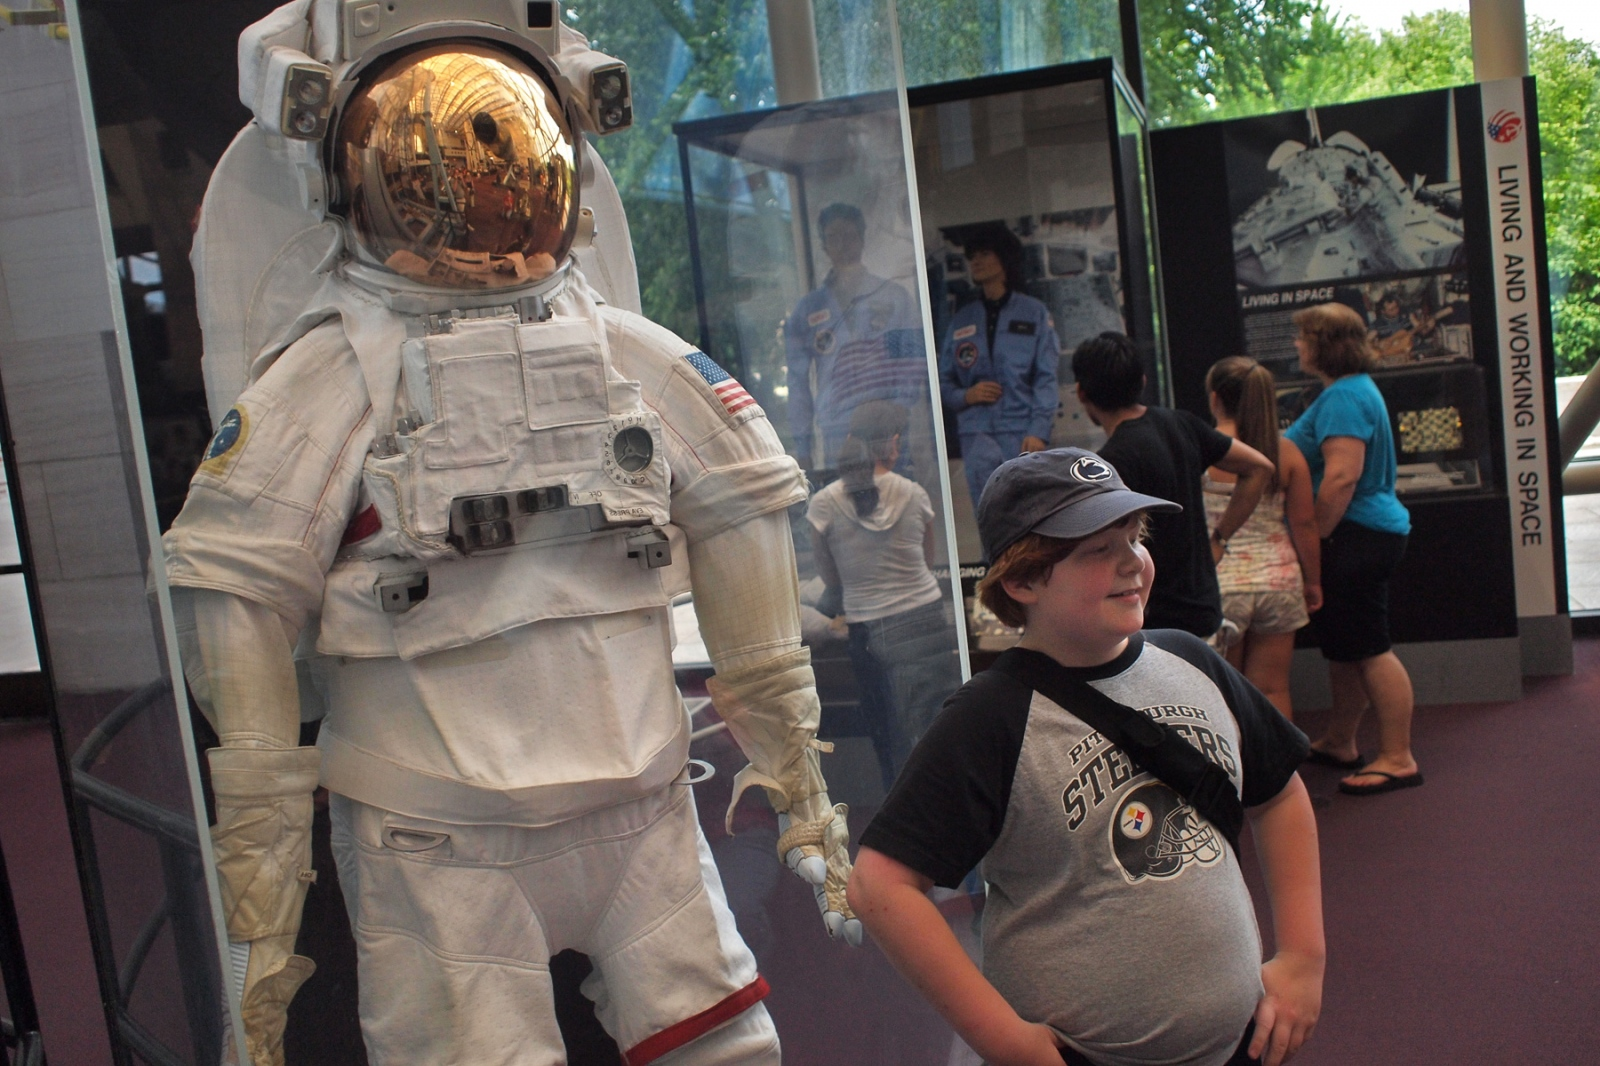 A young boy poses in front of a space suit worn by astronauts on the U.S. shuttle during the 40th Anniversary of the Apollo 11 mission that landed the first humans on the moon.